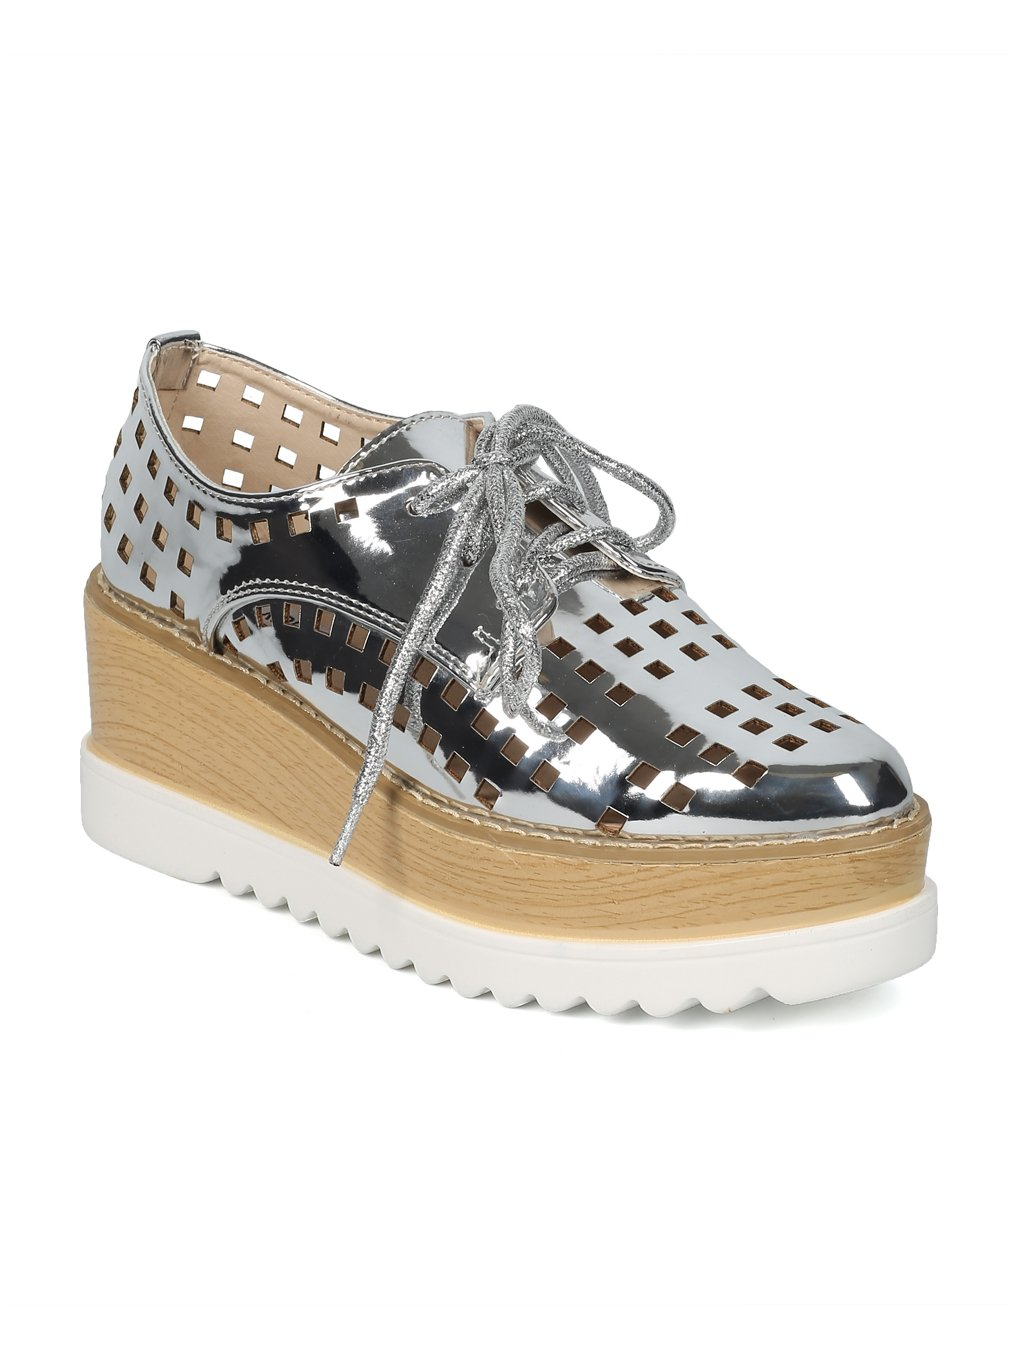 Alrisco Women Perforated Pointy Lace Up Double Stacked Platform Spectator Creeper HF54 - Silver Metallic (Size: 7.0) by Alrisco (Image #4)